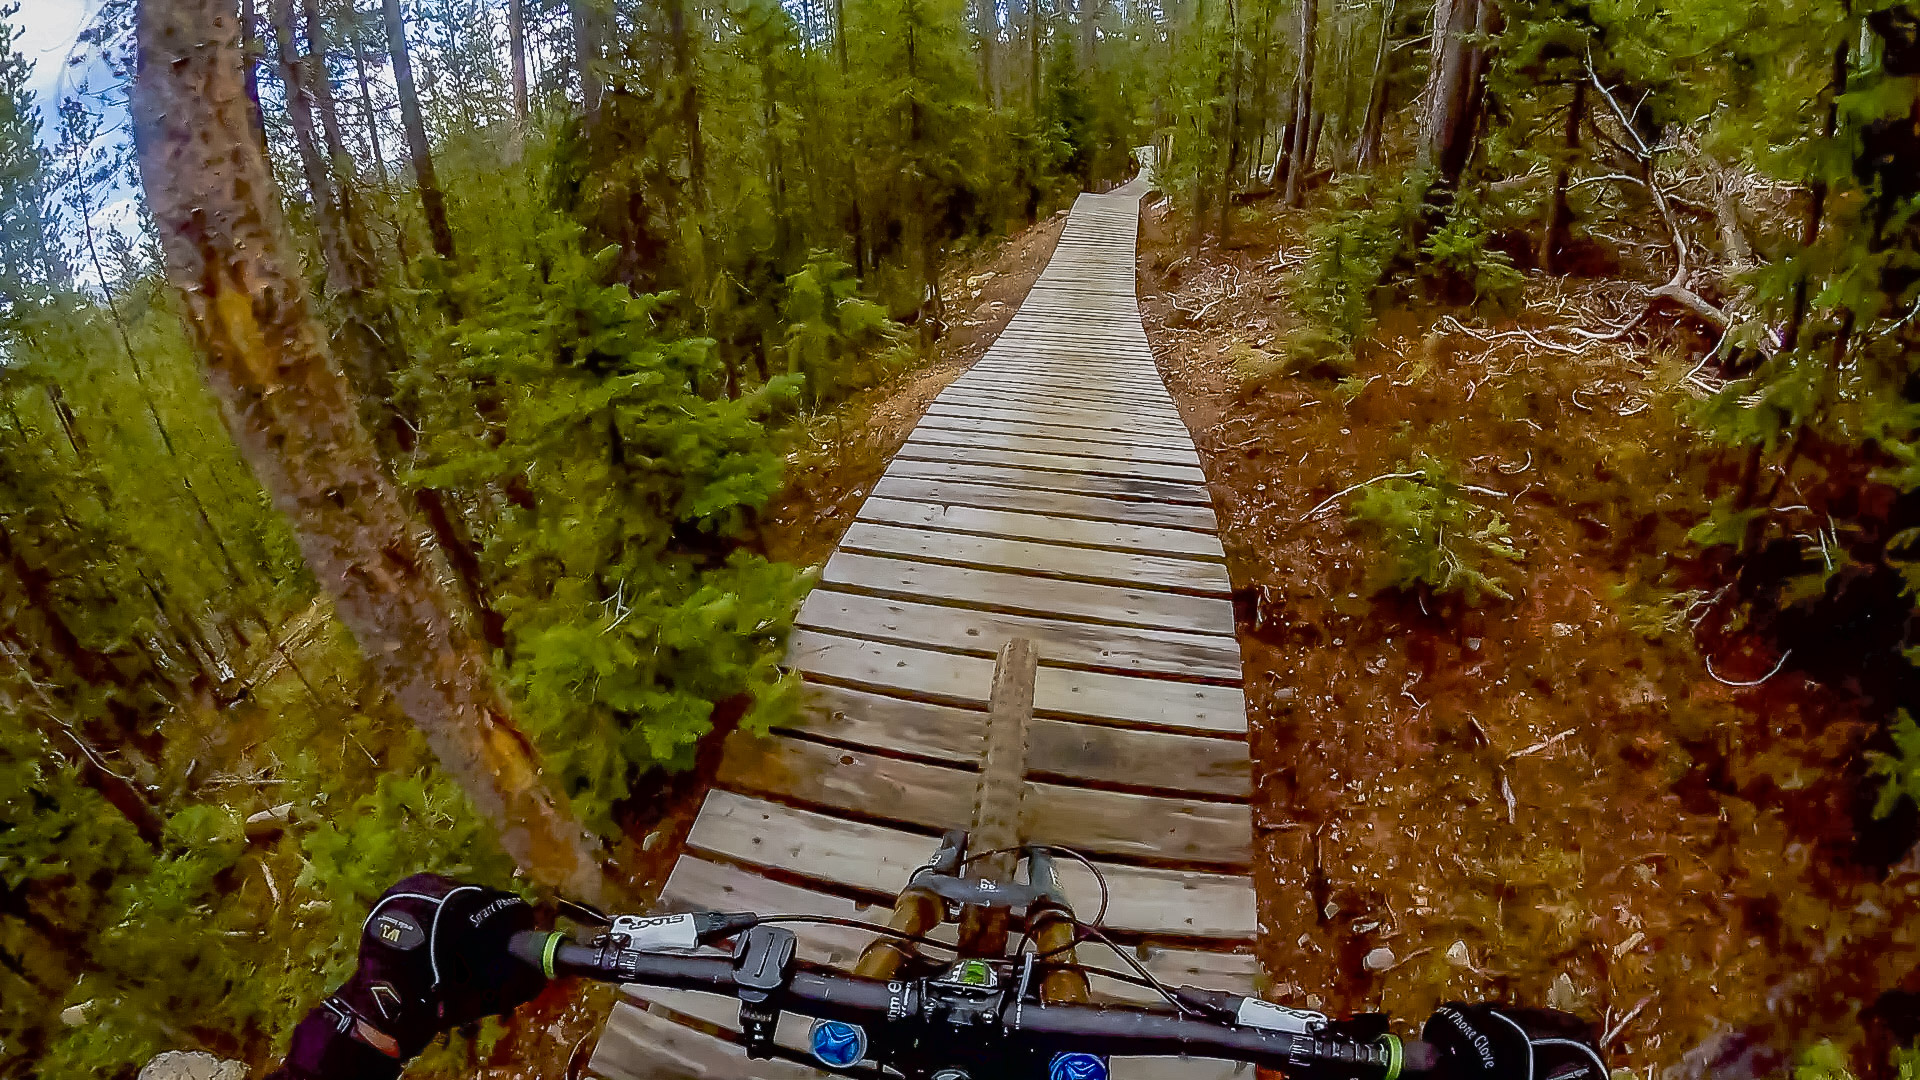 Downhill mountain biking at Trestle Bike Park - MitchTobin com